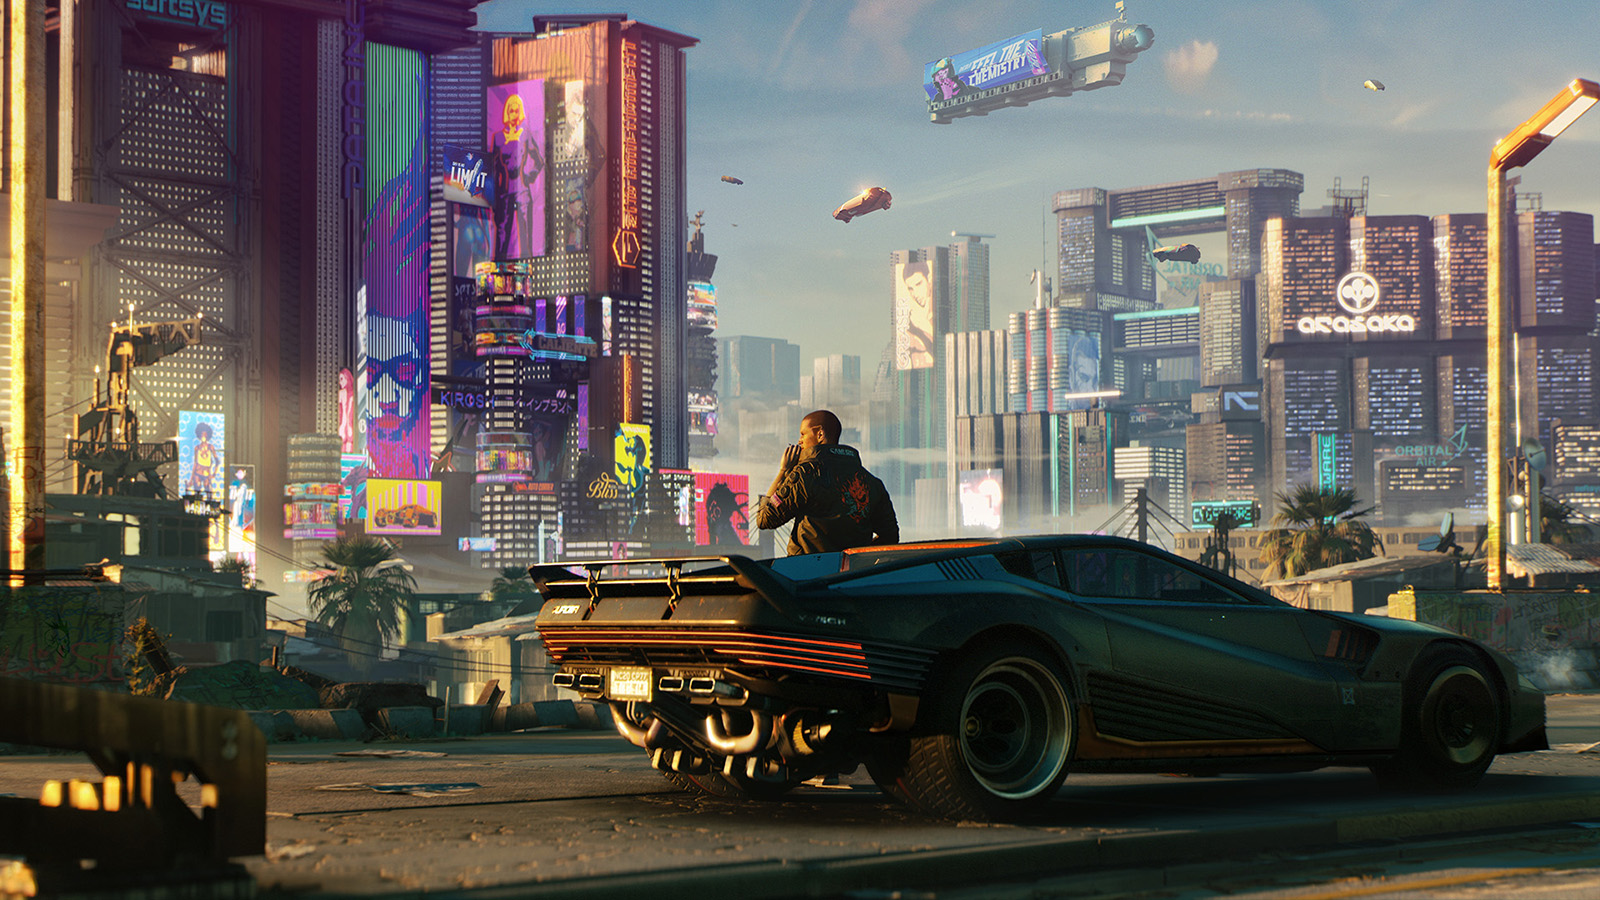 The game 'Cyberpunk 2077' is easily one of the most anticipated titles of 2020, but not without controversy. Go behind the biggest issues with the game.